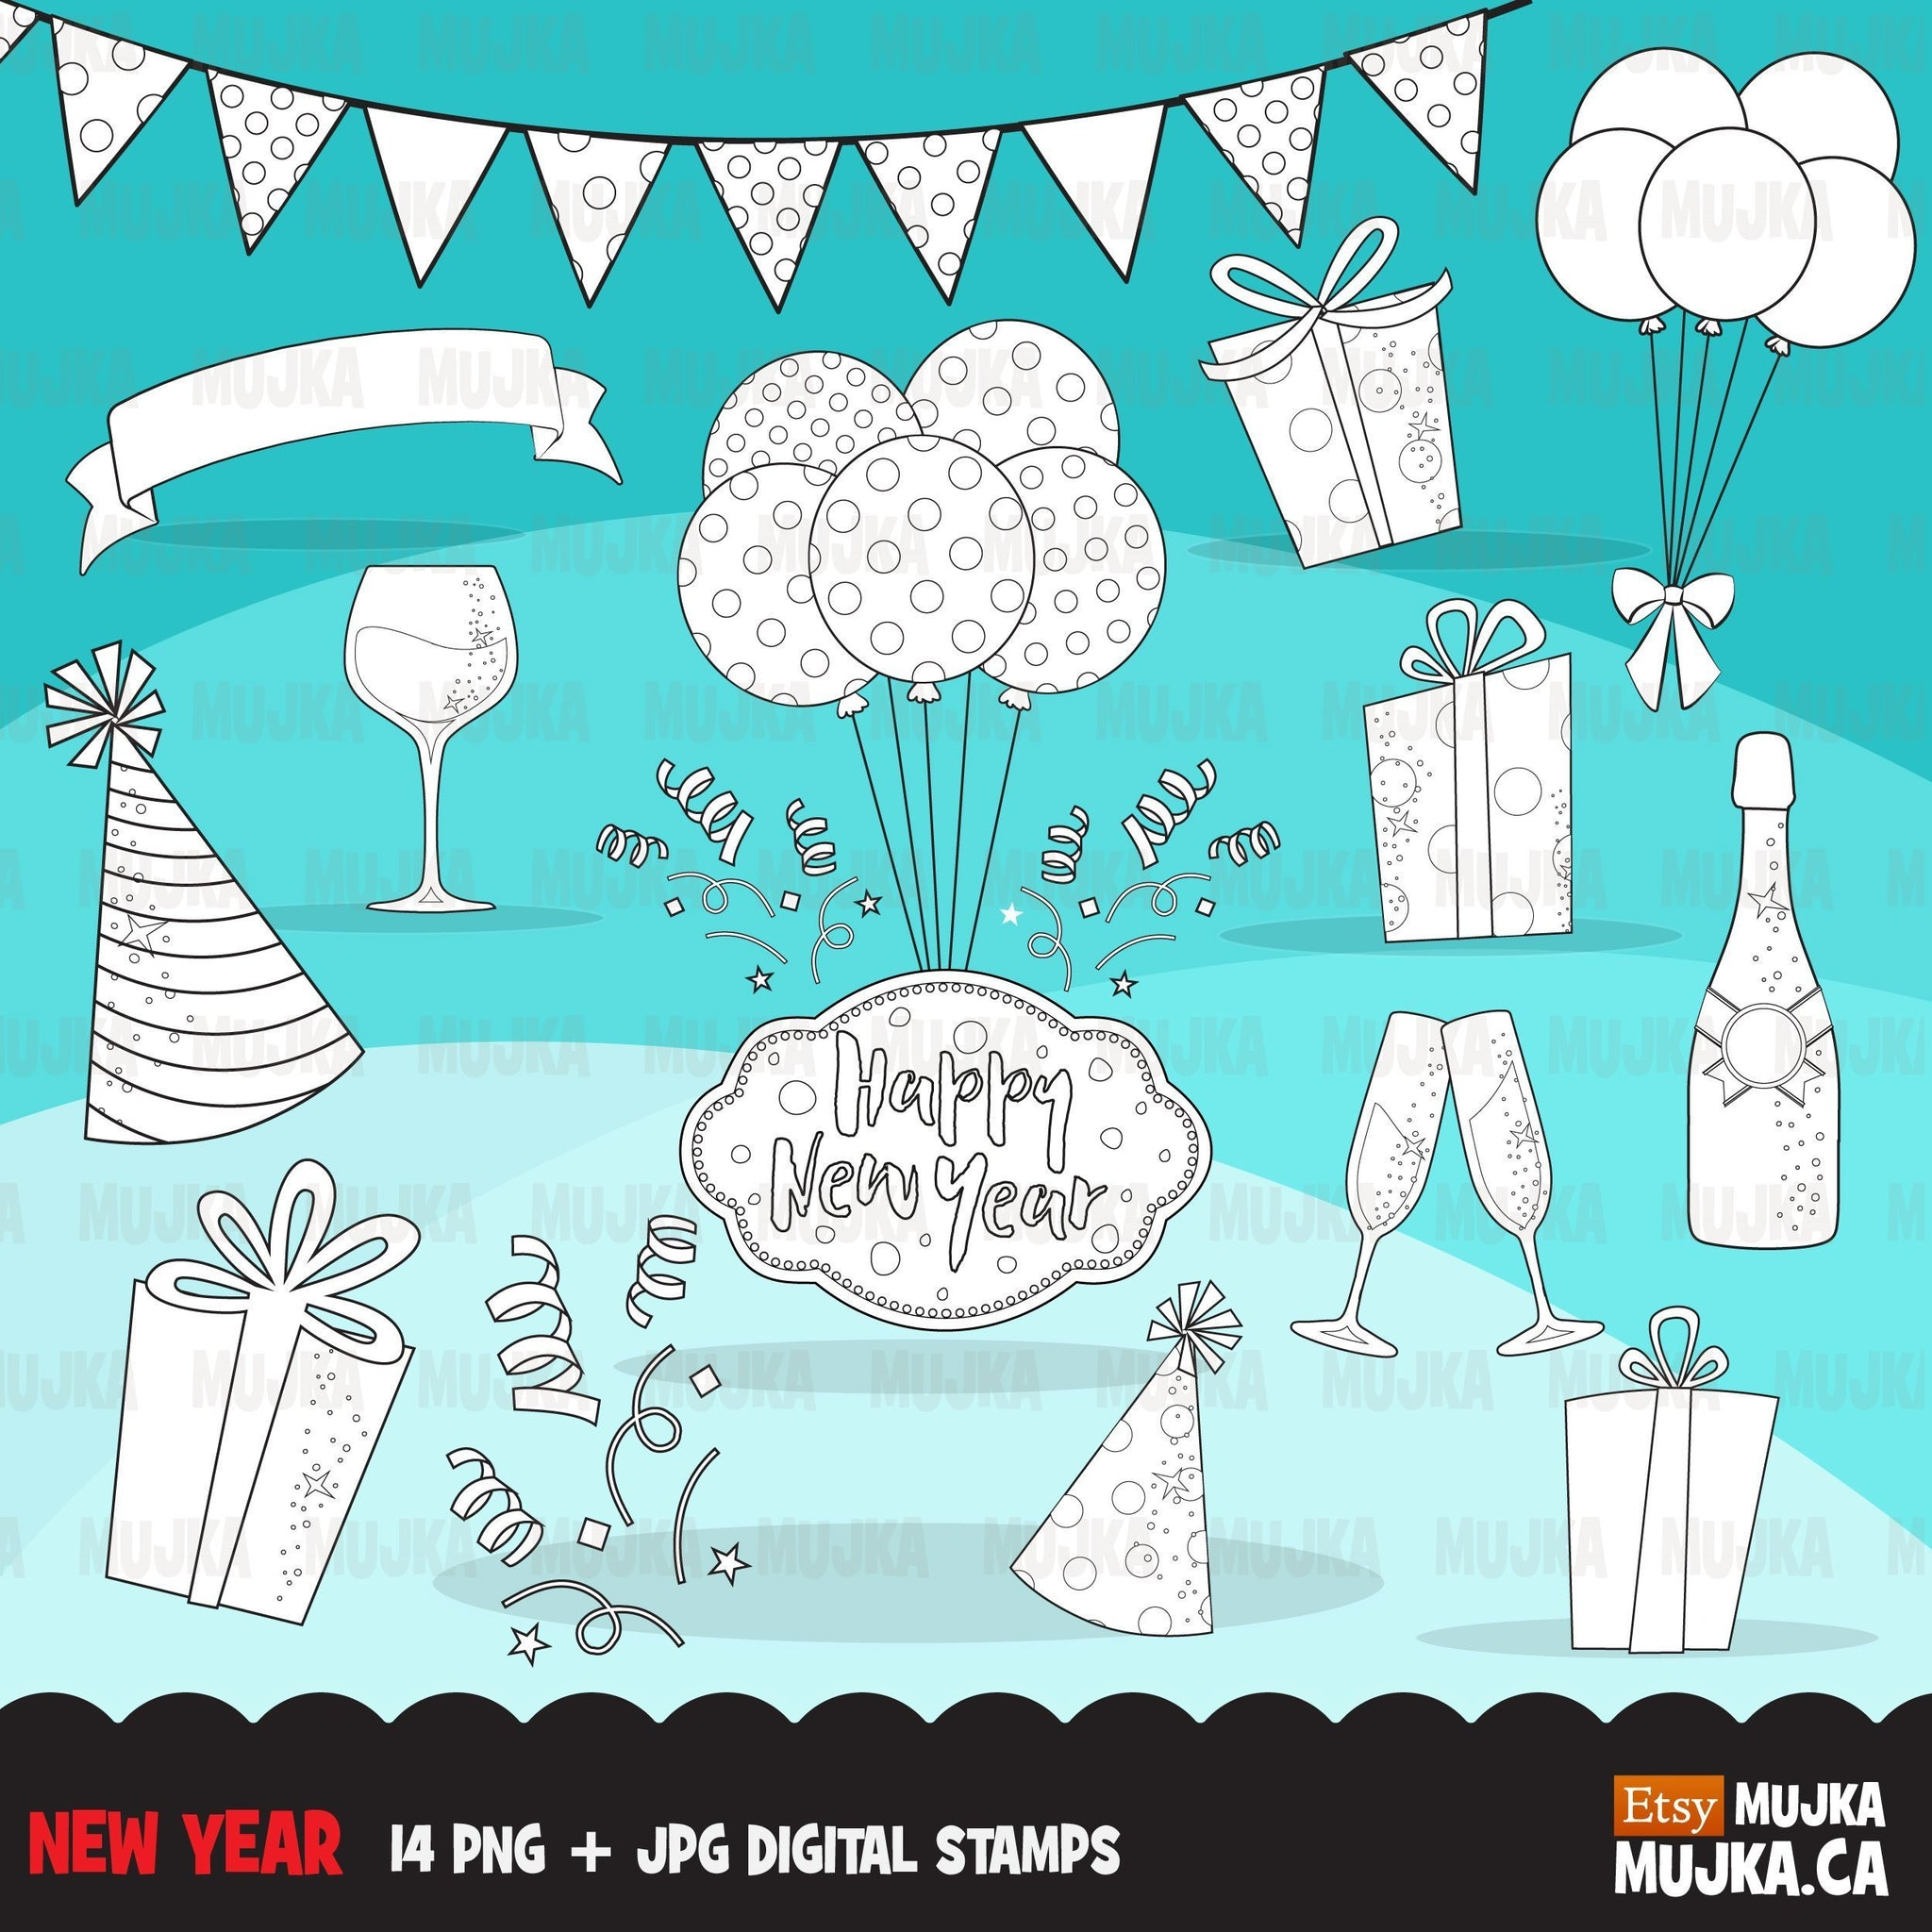 New year Digital Stamps, celebrating